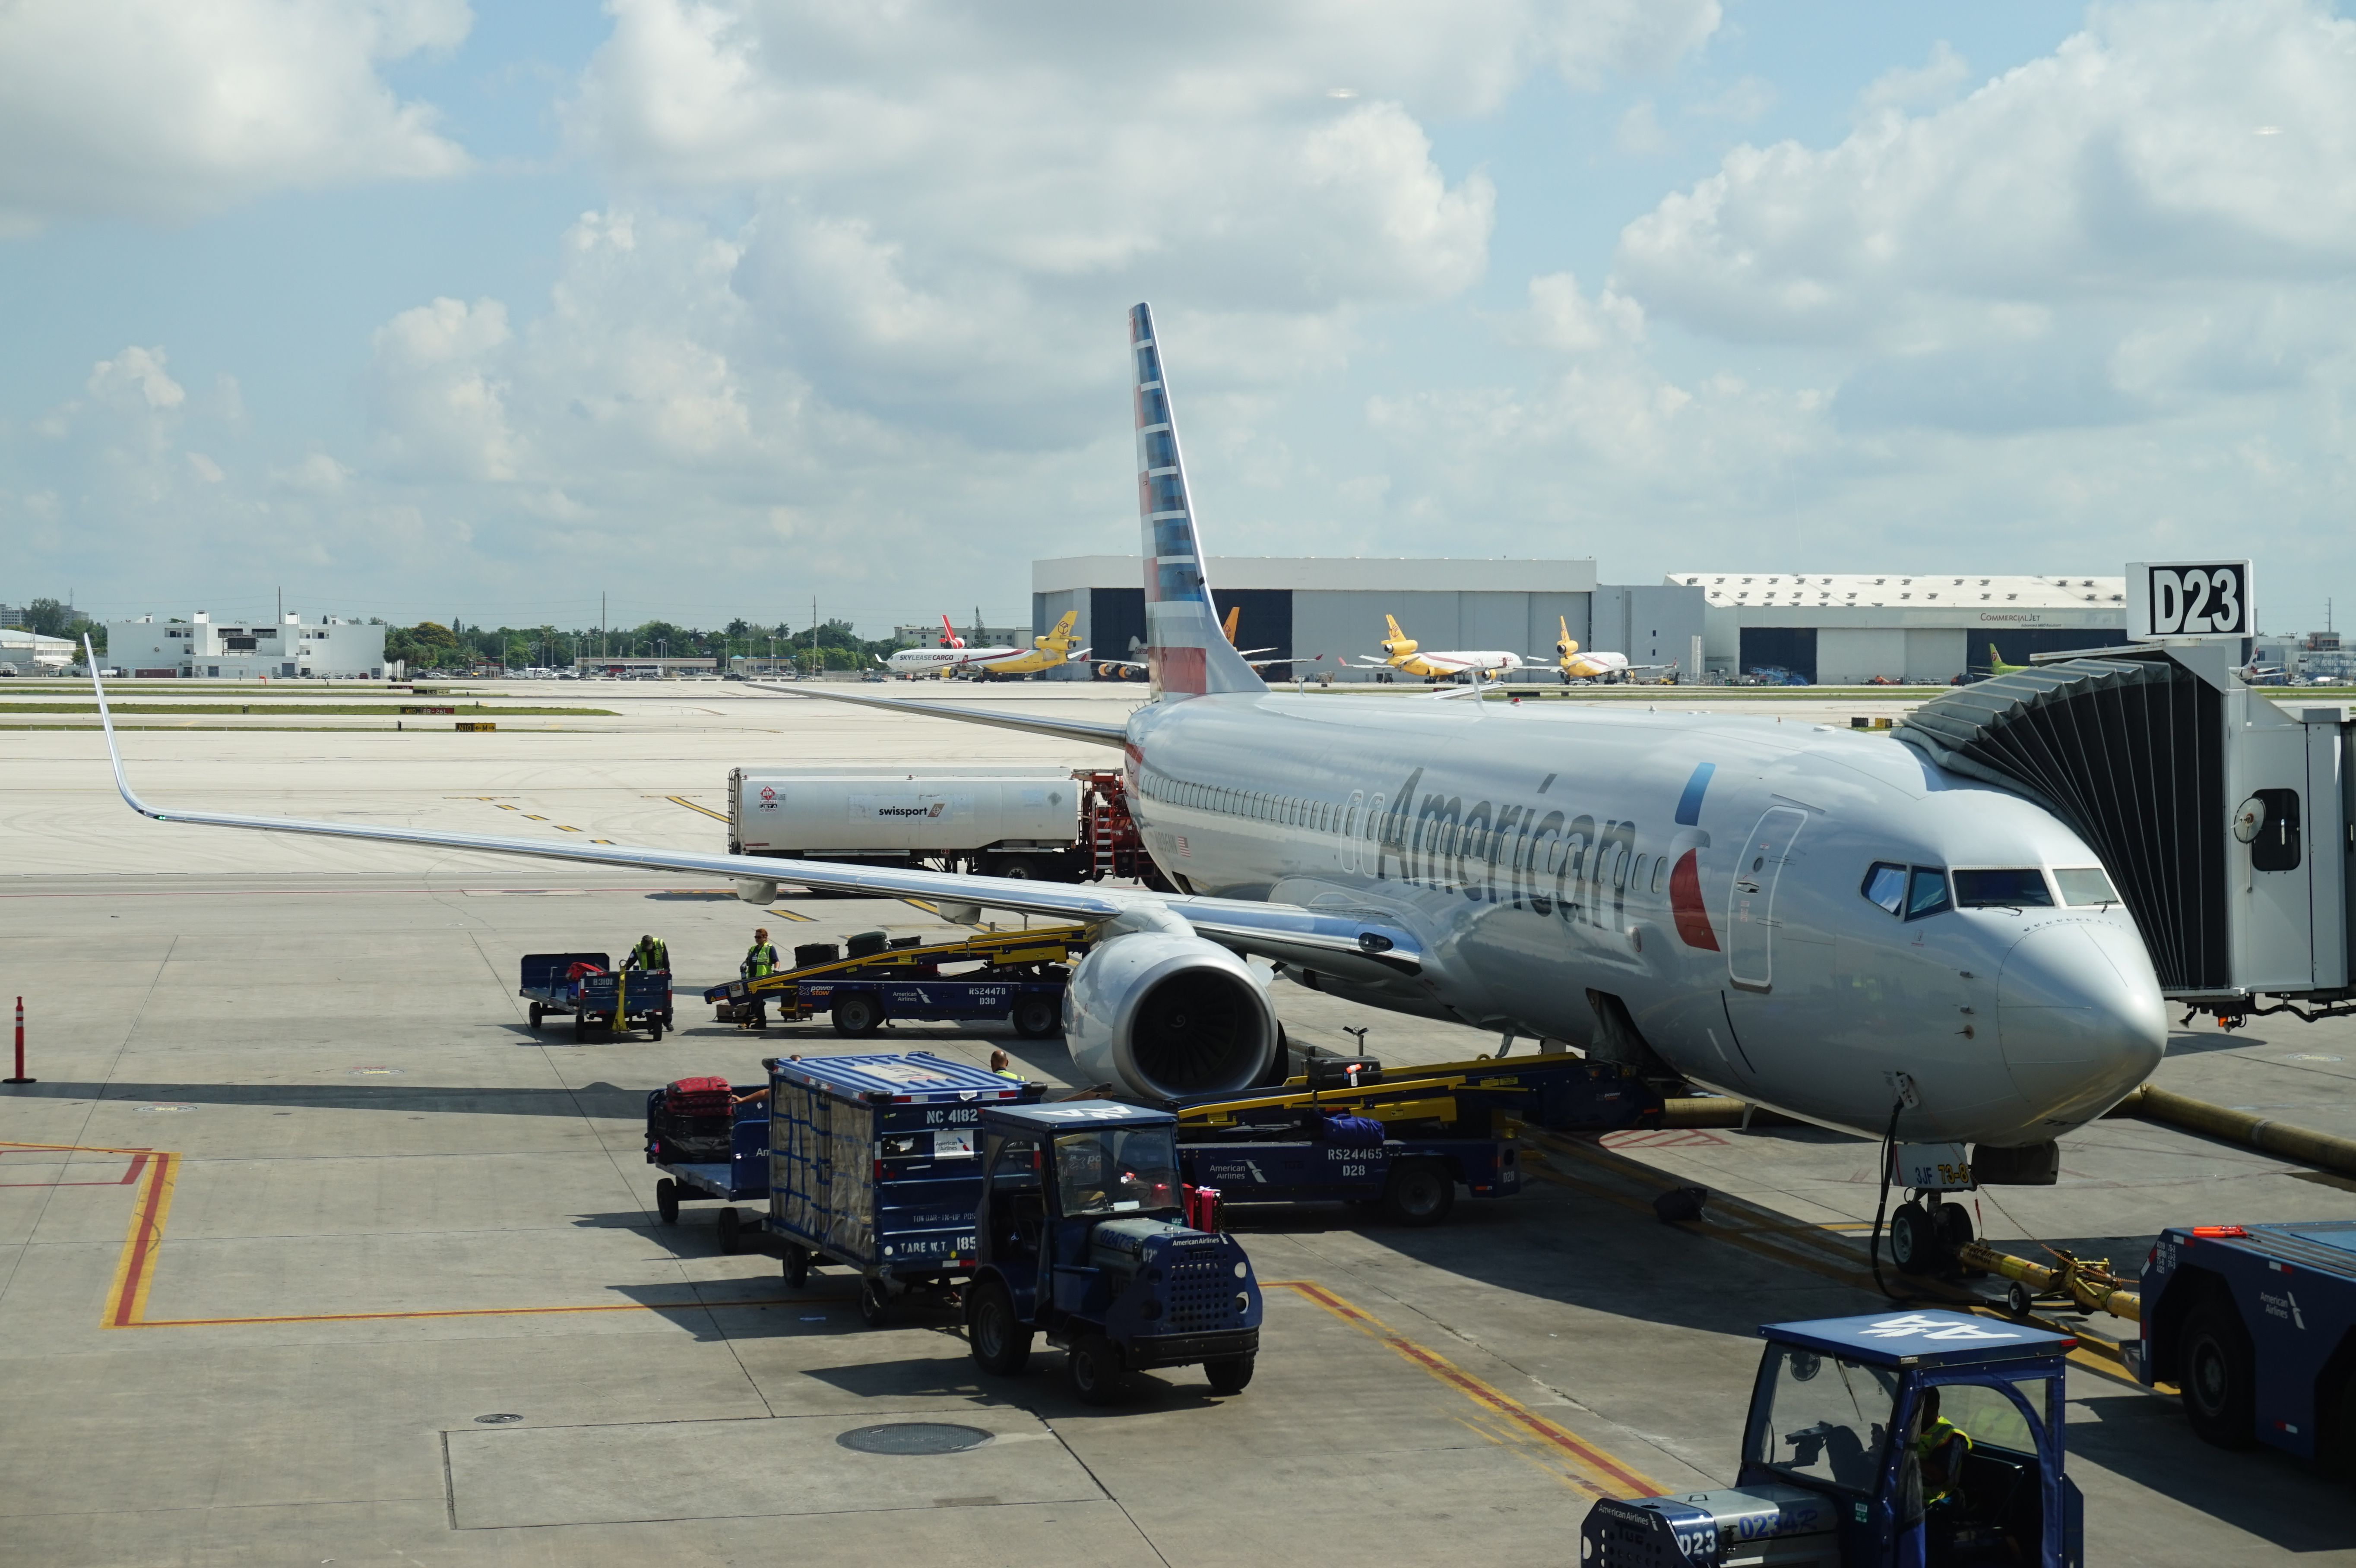 American Airlines A321 at Miami International Airport